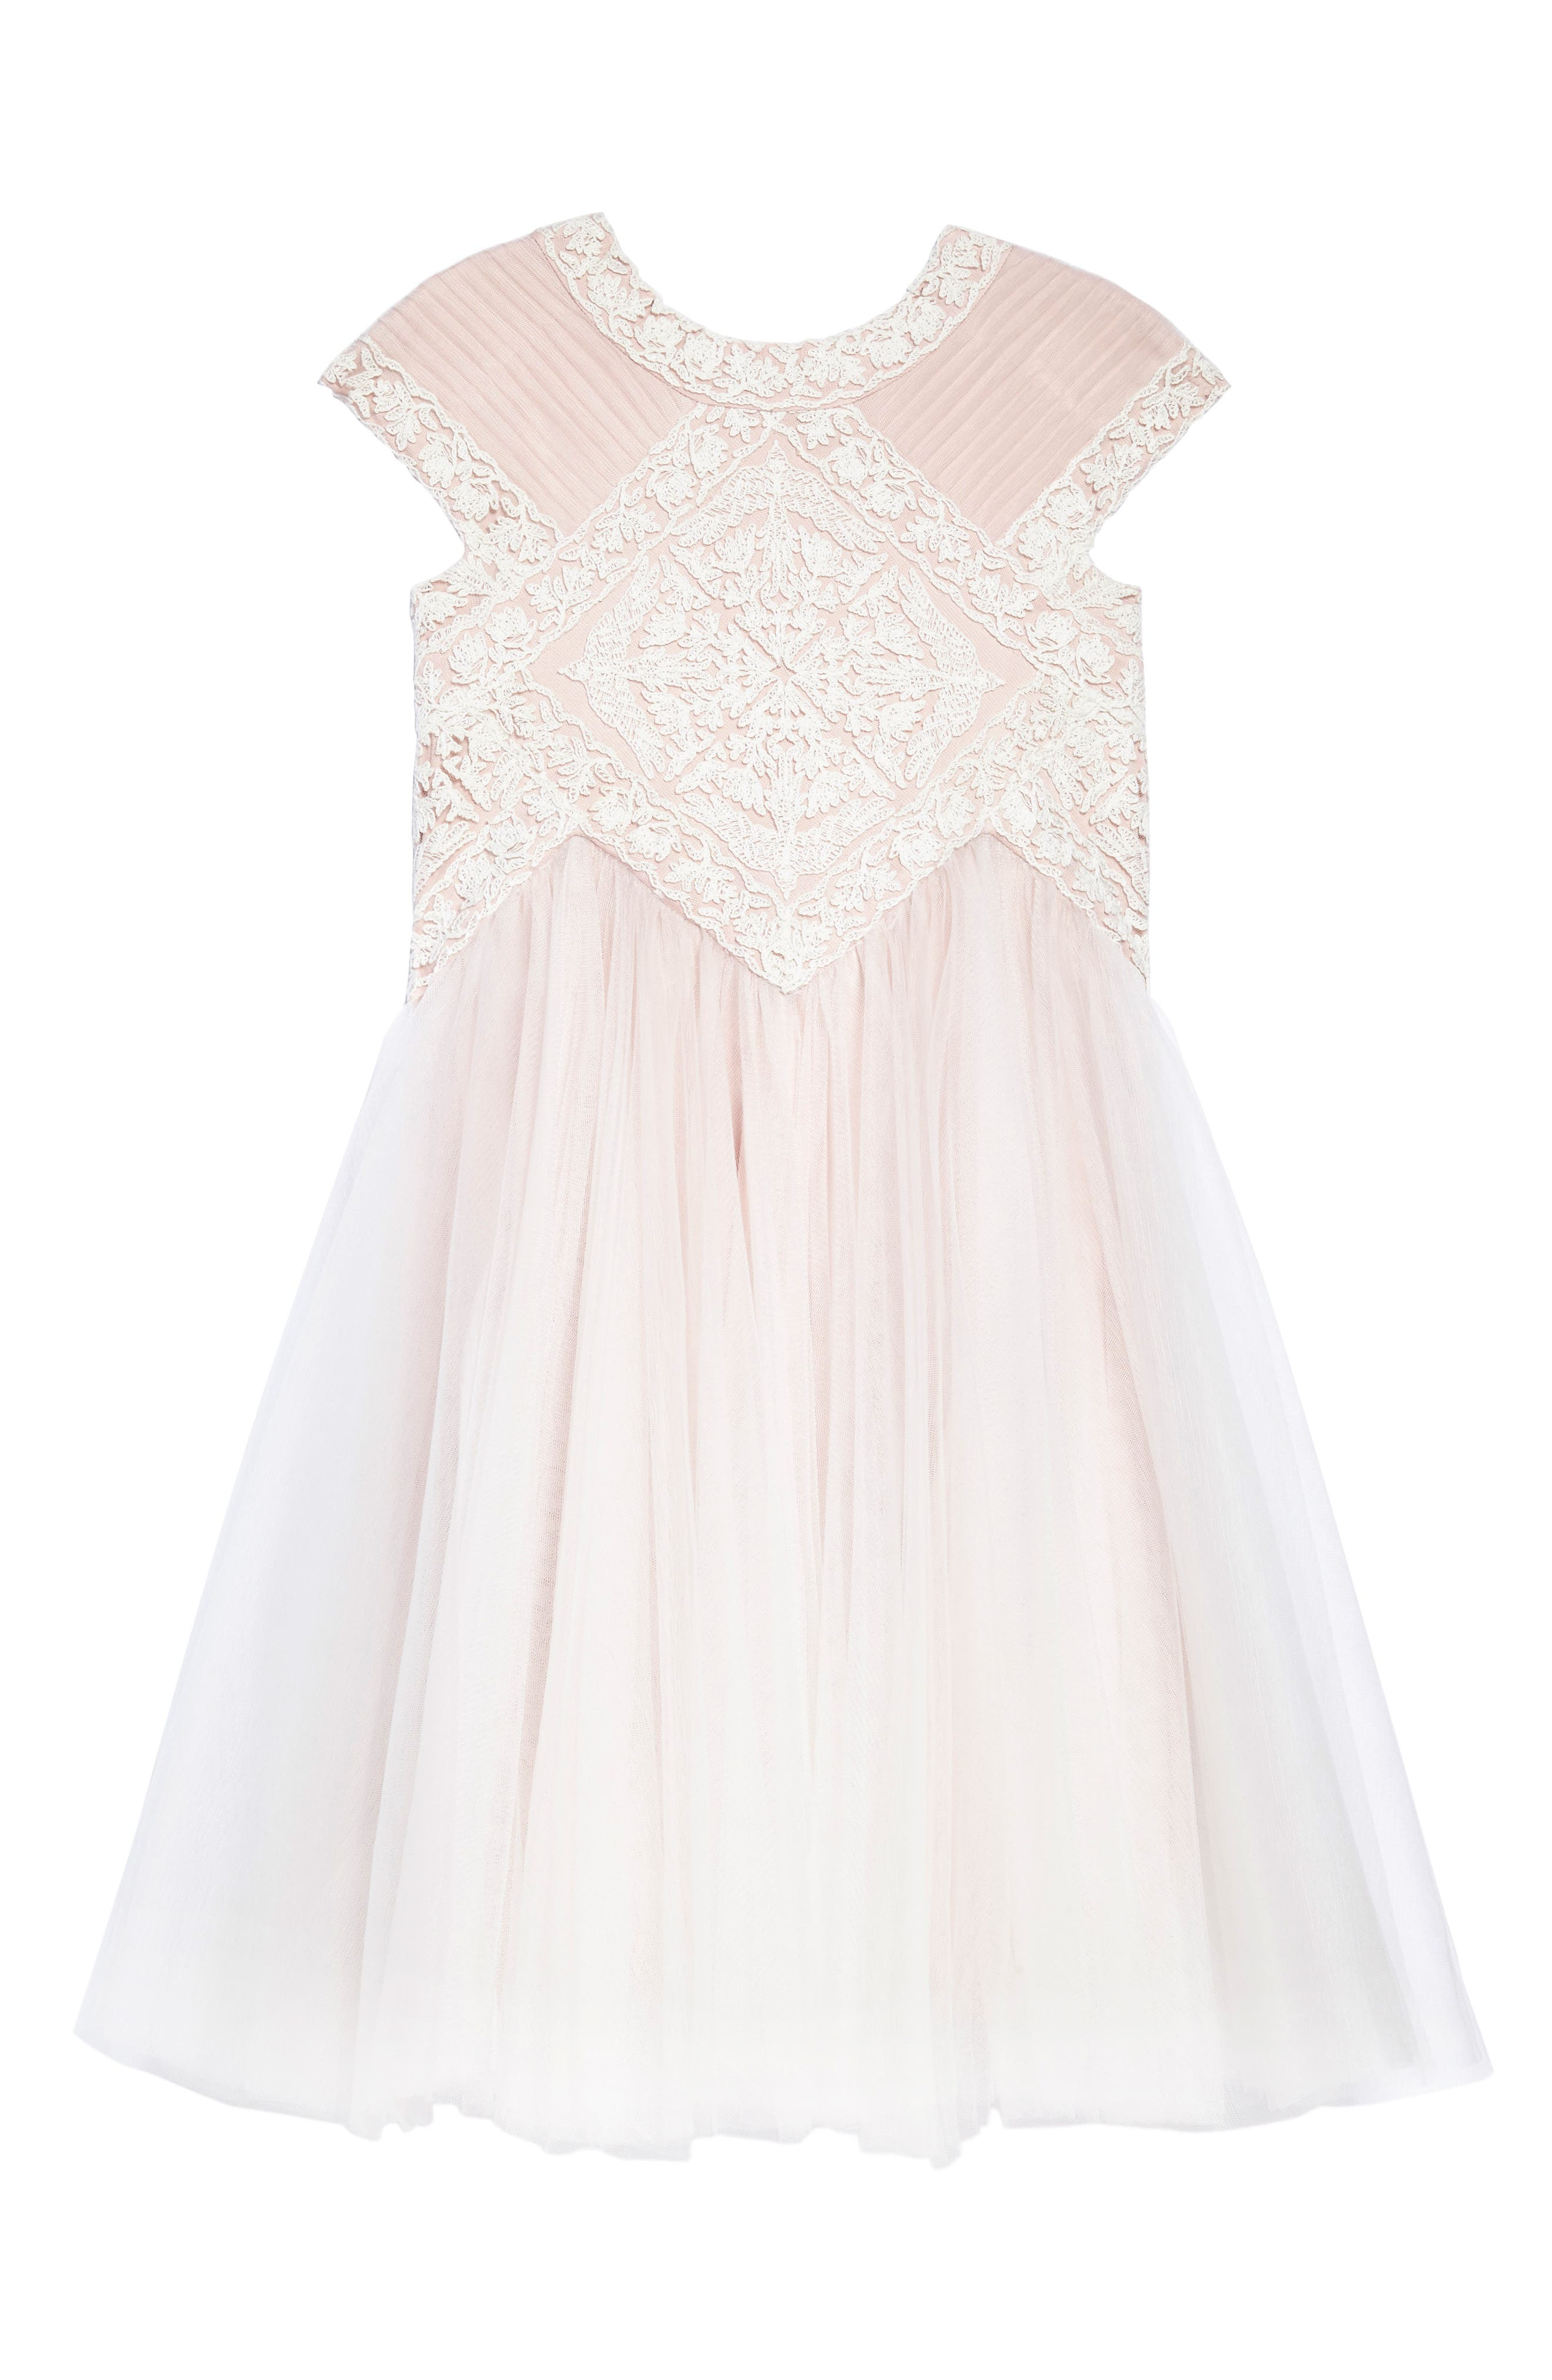 Lace Tulle Dress,                         Main,                         color, Ivory/ Primrose